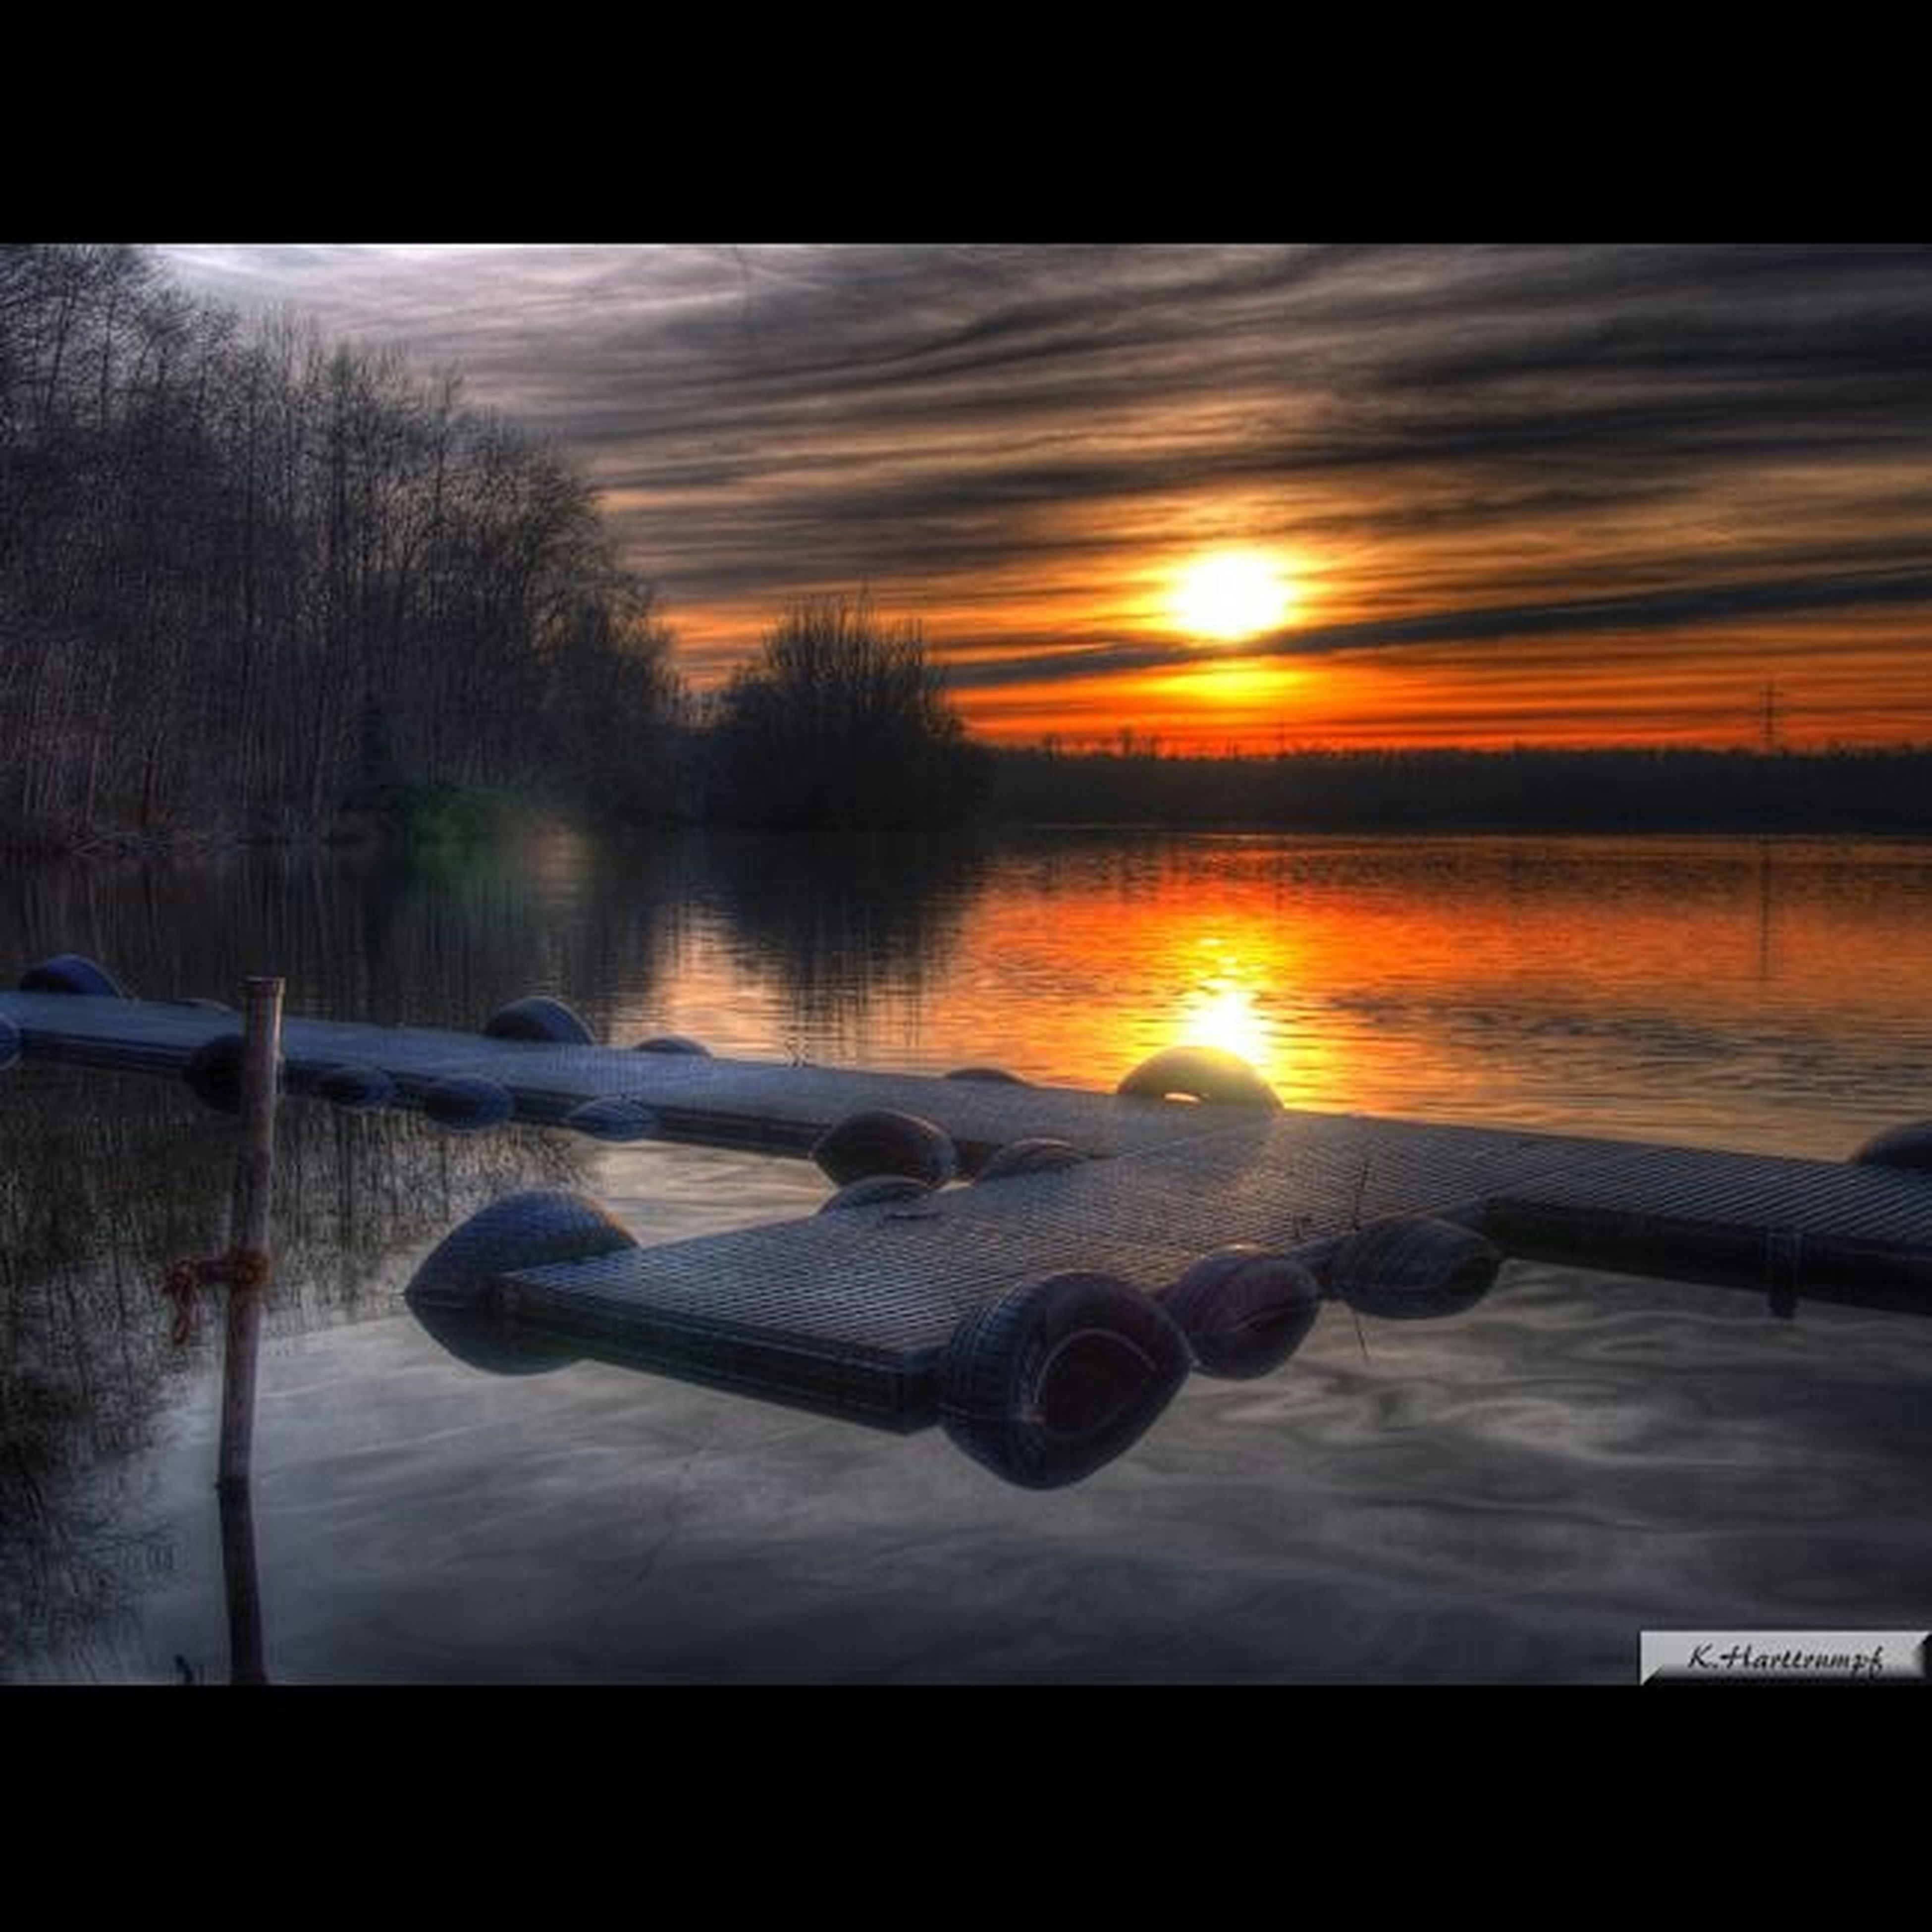 sunset, orange color, sky, water, tranquility, scenics, tranquil scene, lake, beauty in nature, sun, snow, winter, reflection, nature, cold temperature, cloud - sky, transportation, idyllic, sunlight, weather